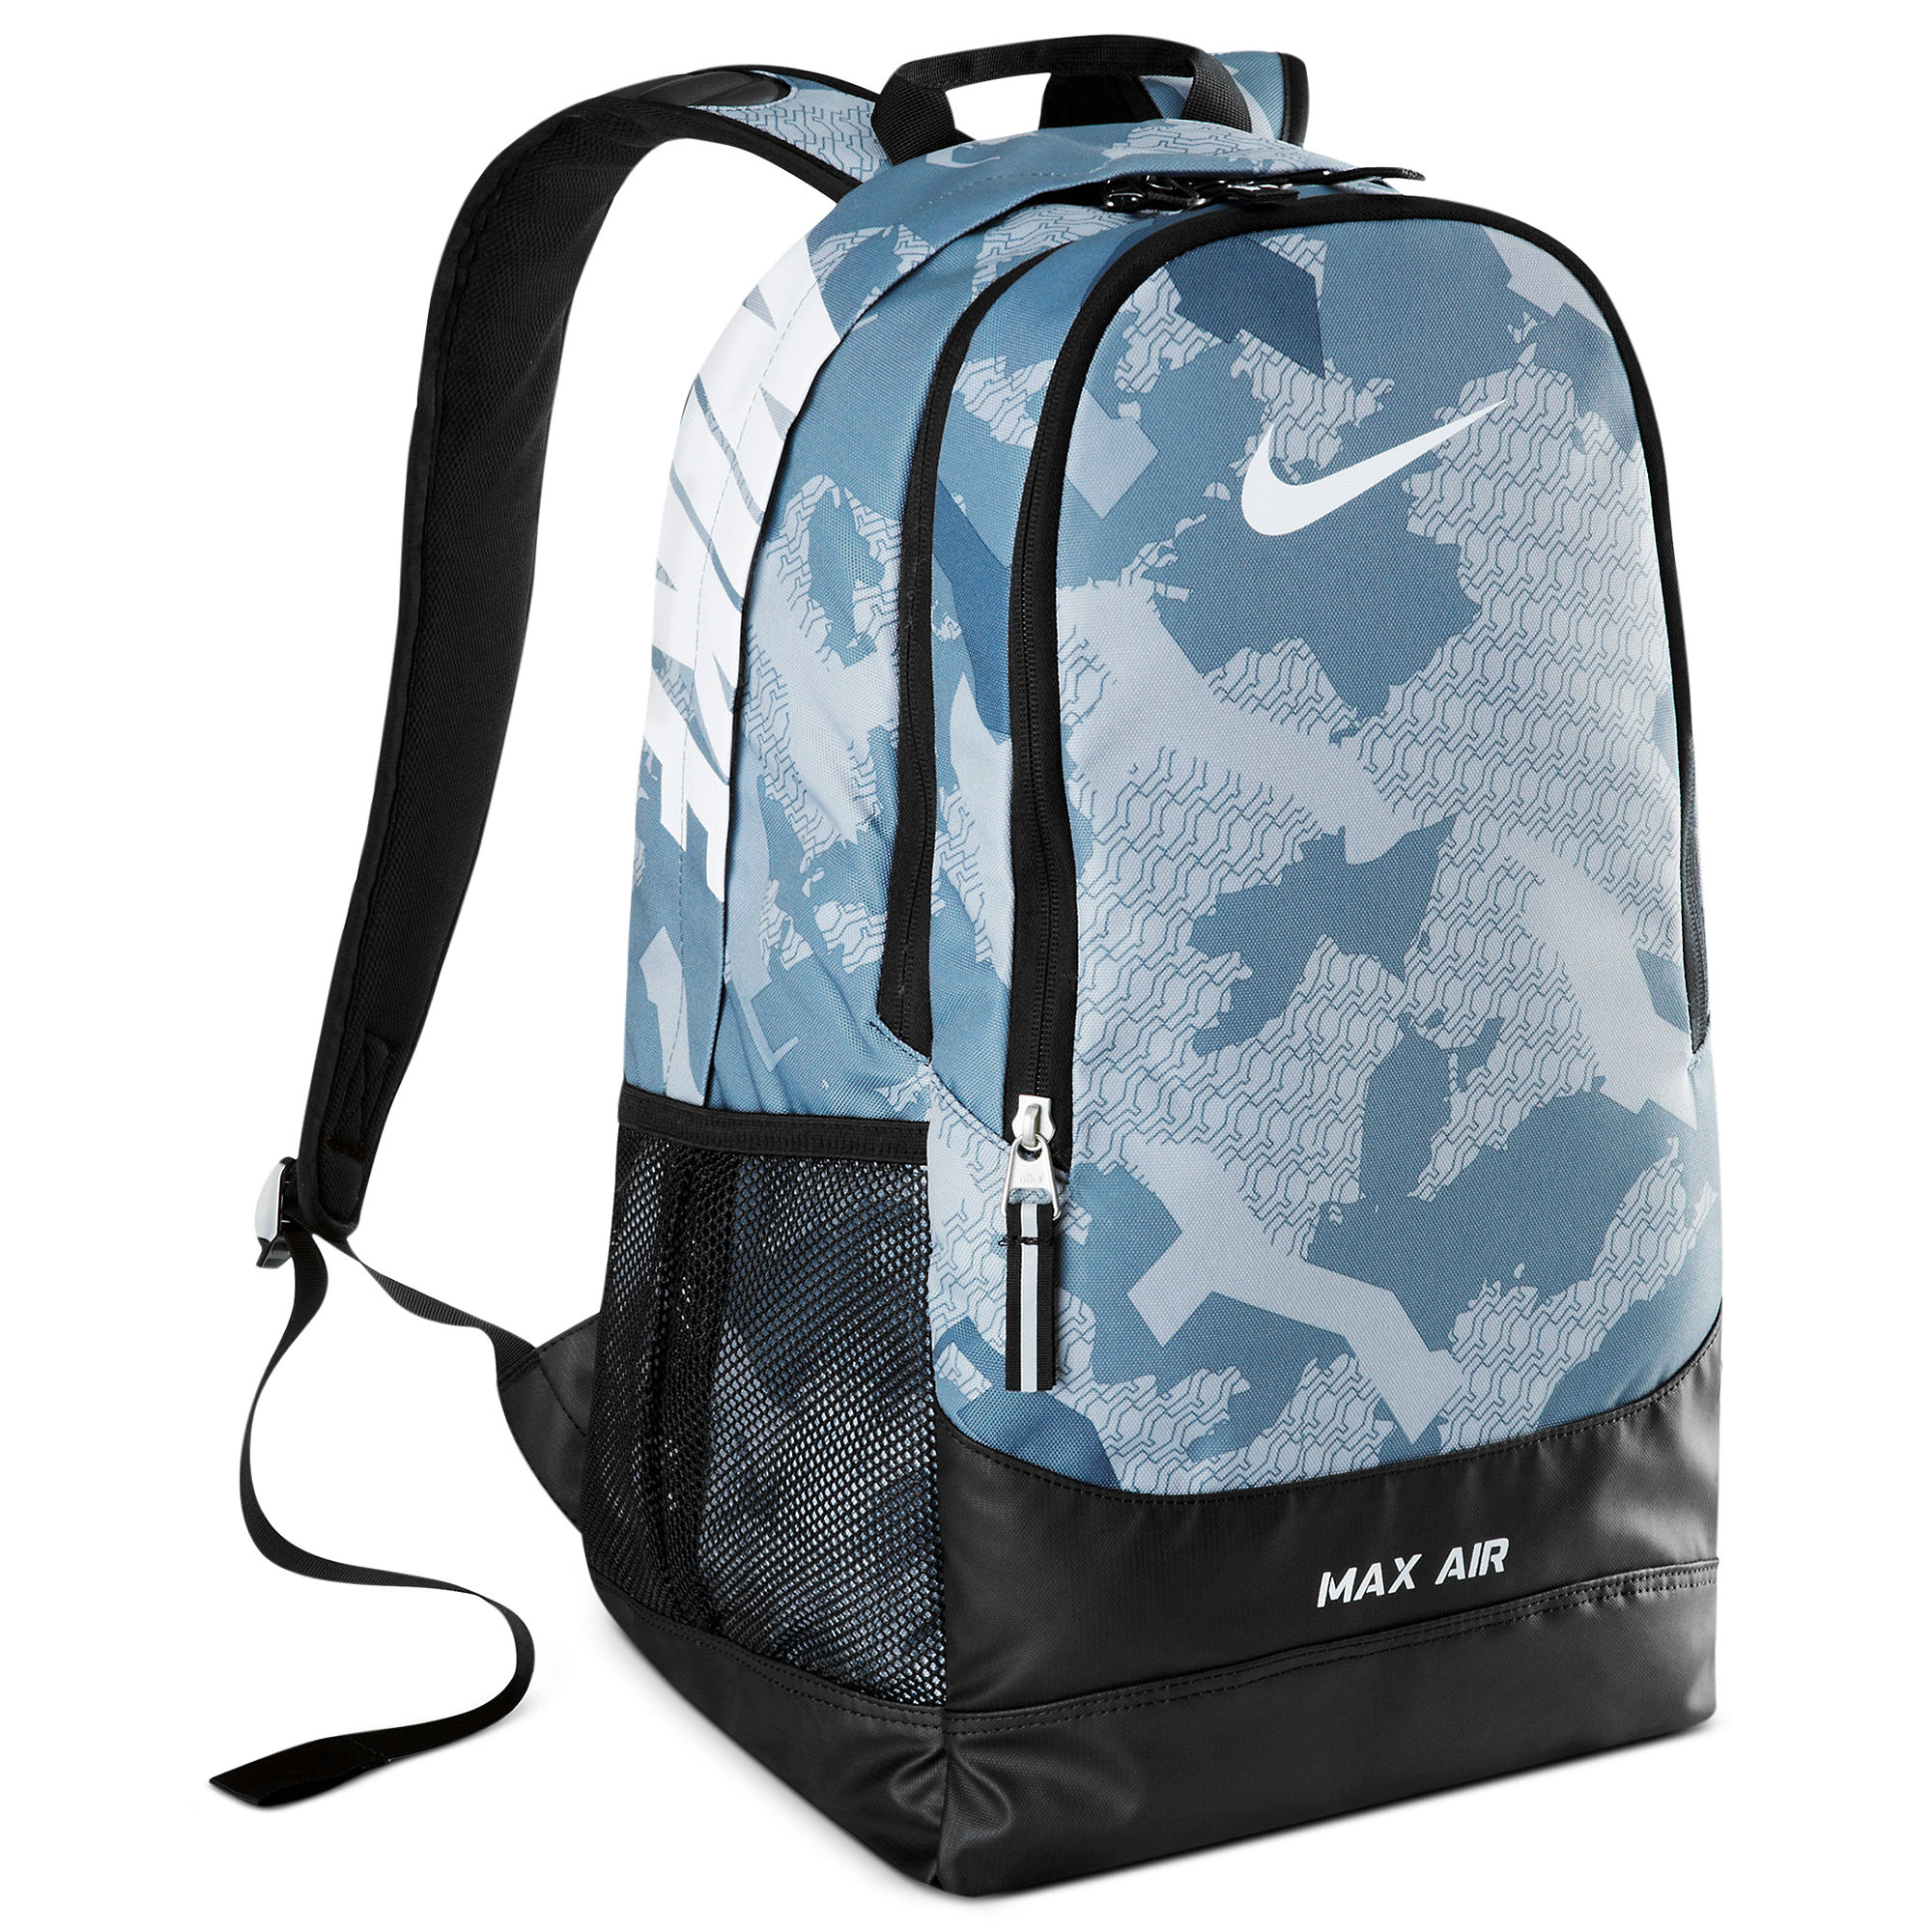 Lyst - Nike Team Training Max Air Large Graphic Backpack